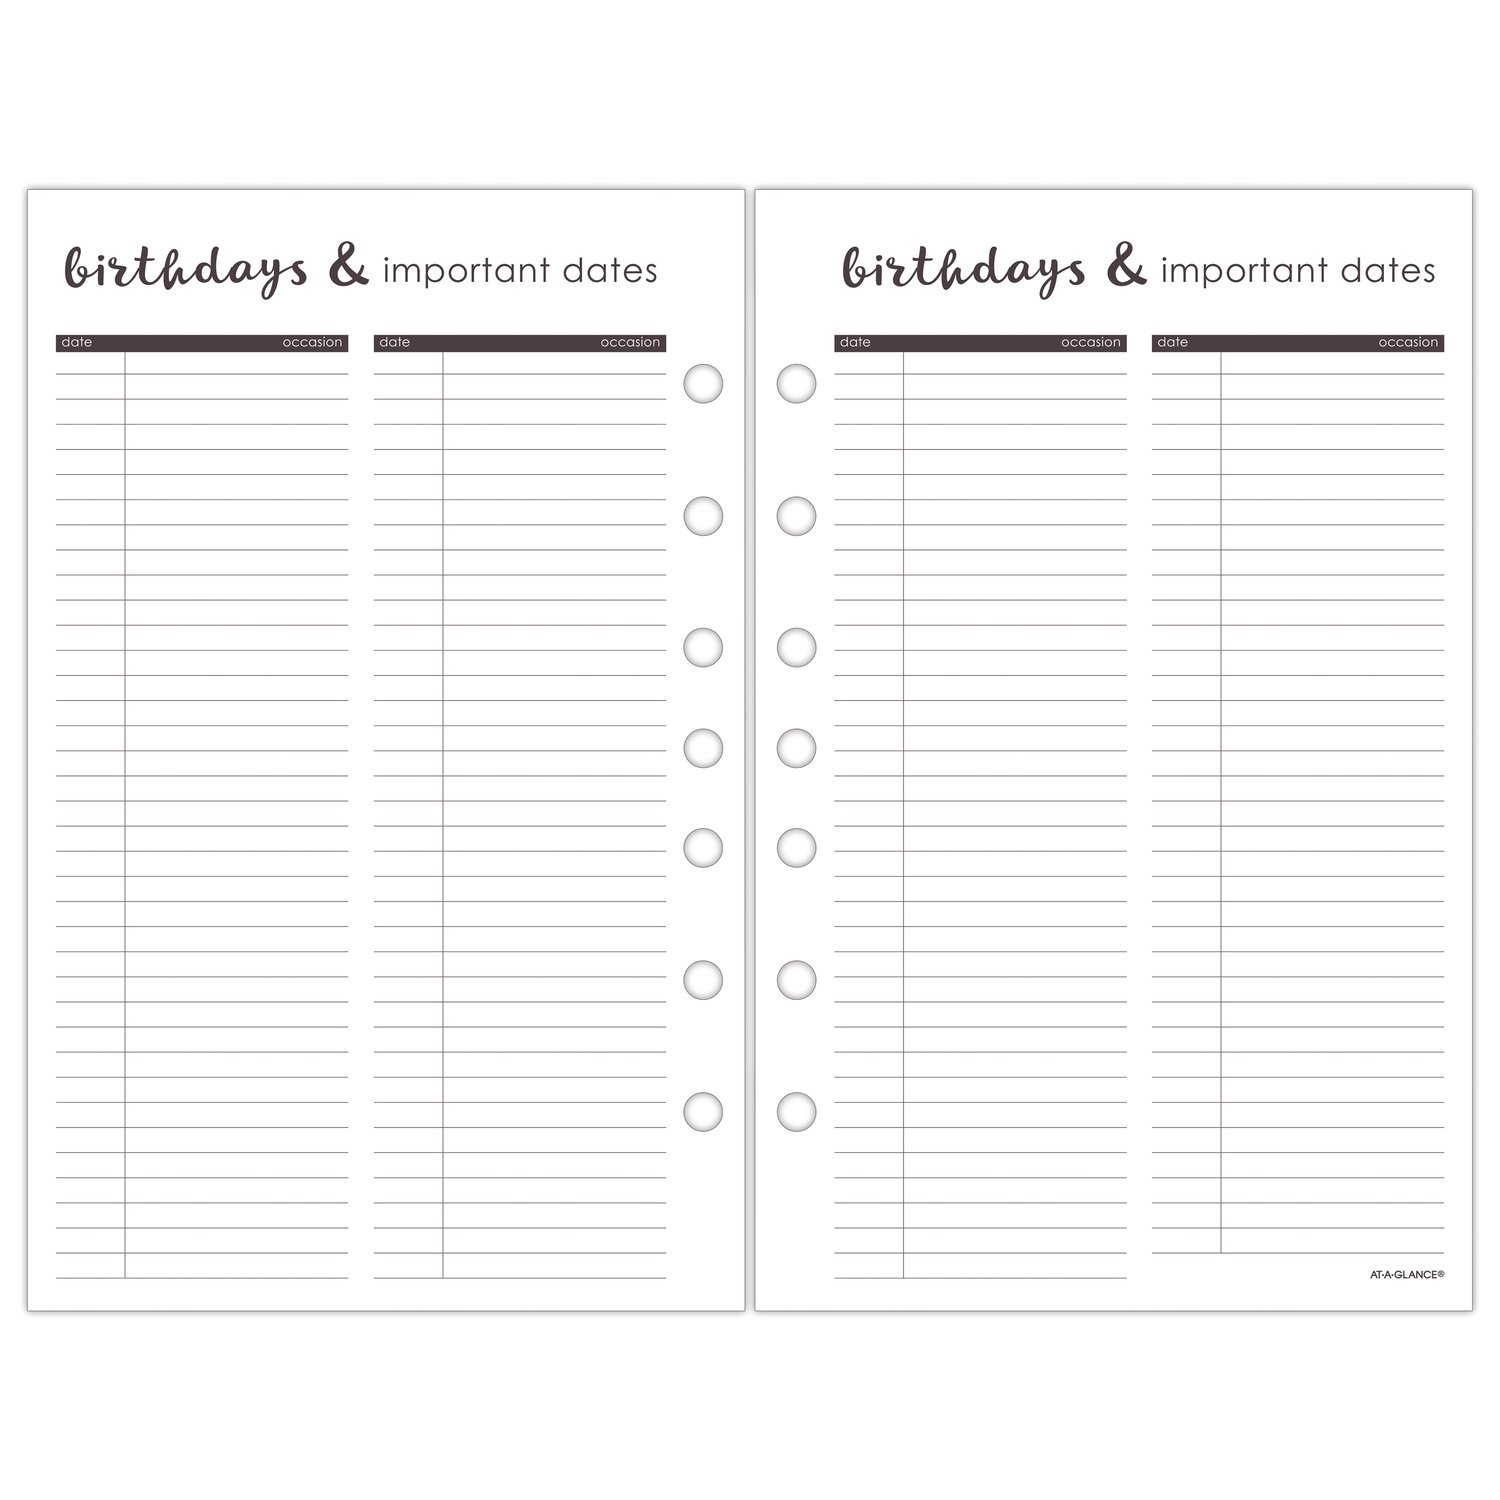 amazon com at a glance 2019 monthly planner refill 5 1 2 x 8 1 2 rh amazon com